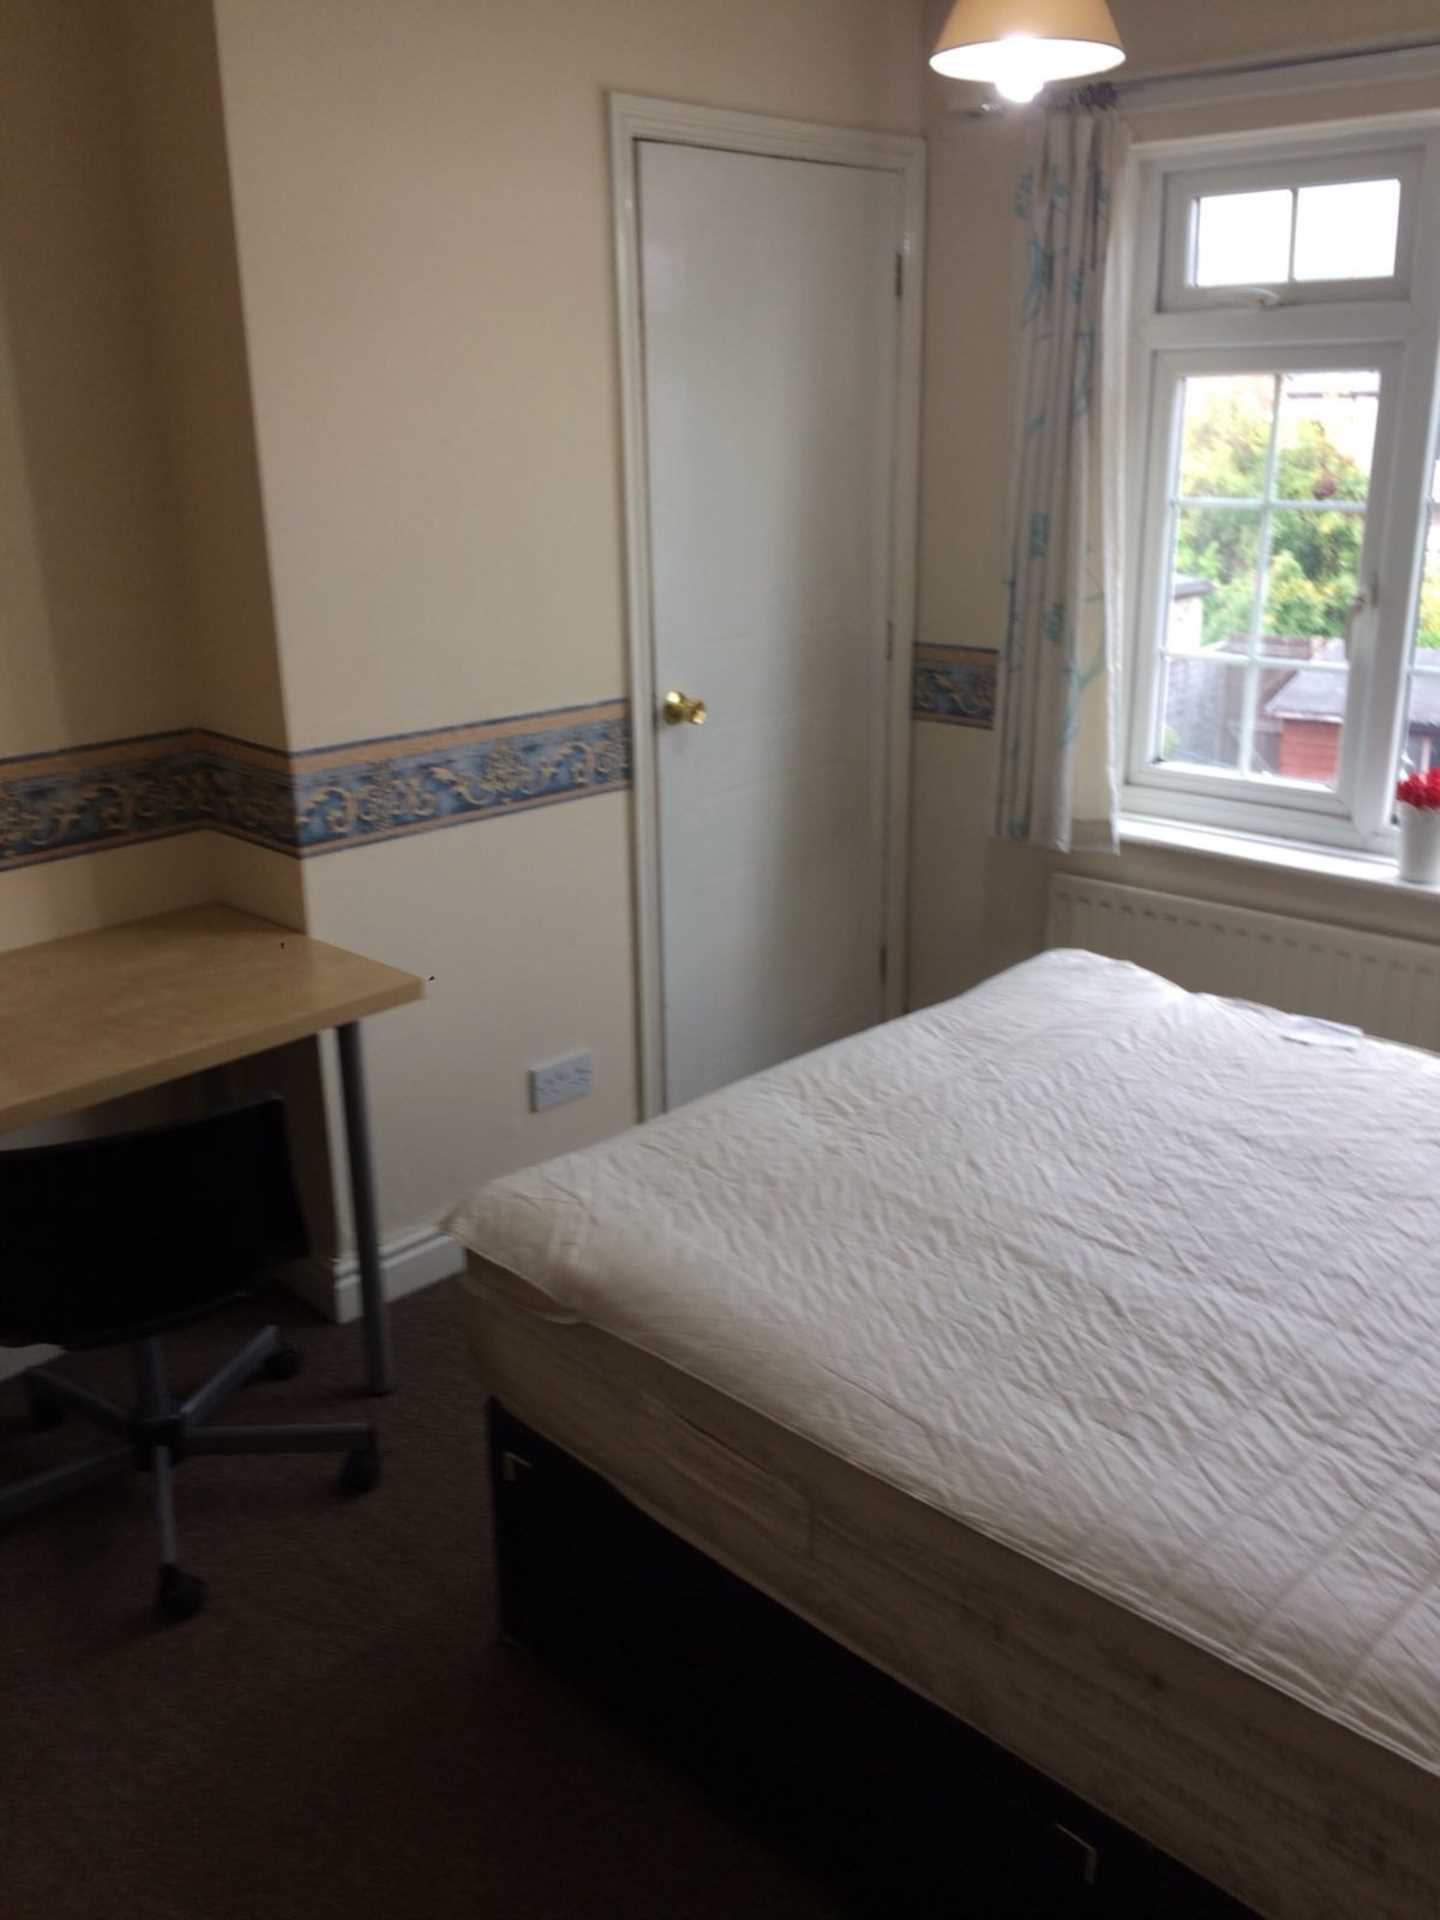 Room 6, Queensland Avenue - 5 bedroom 2 bathroom student home fully furnished, WIFI & bills included - NO FEES, Image 8